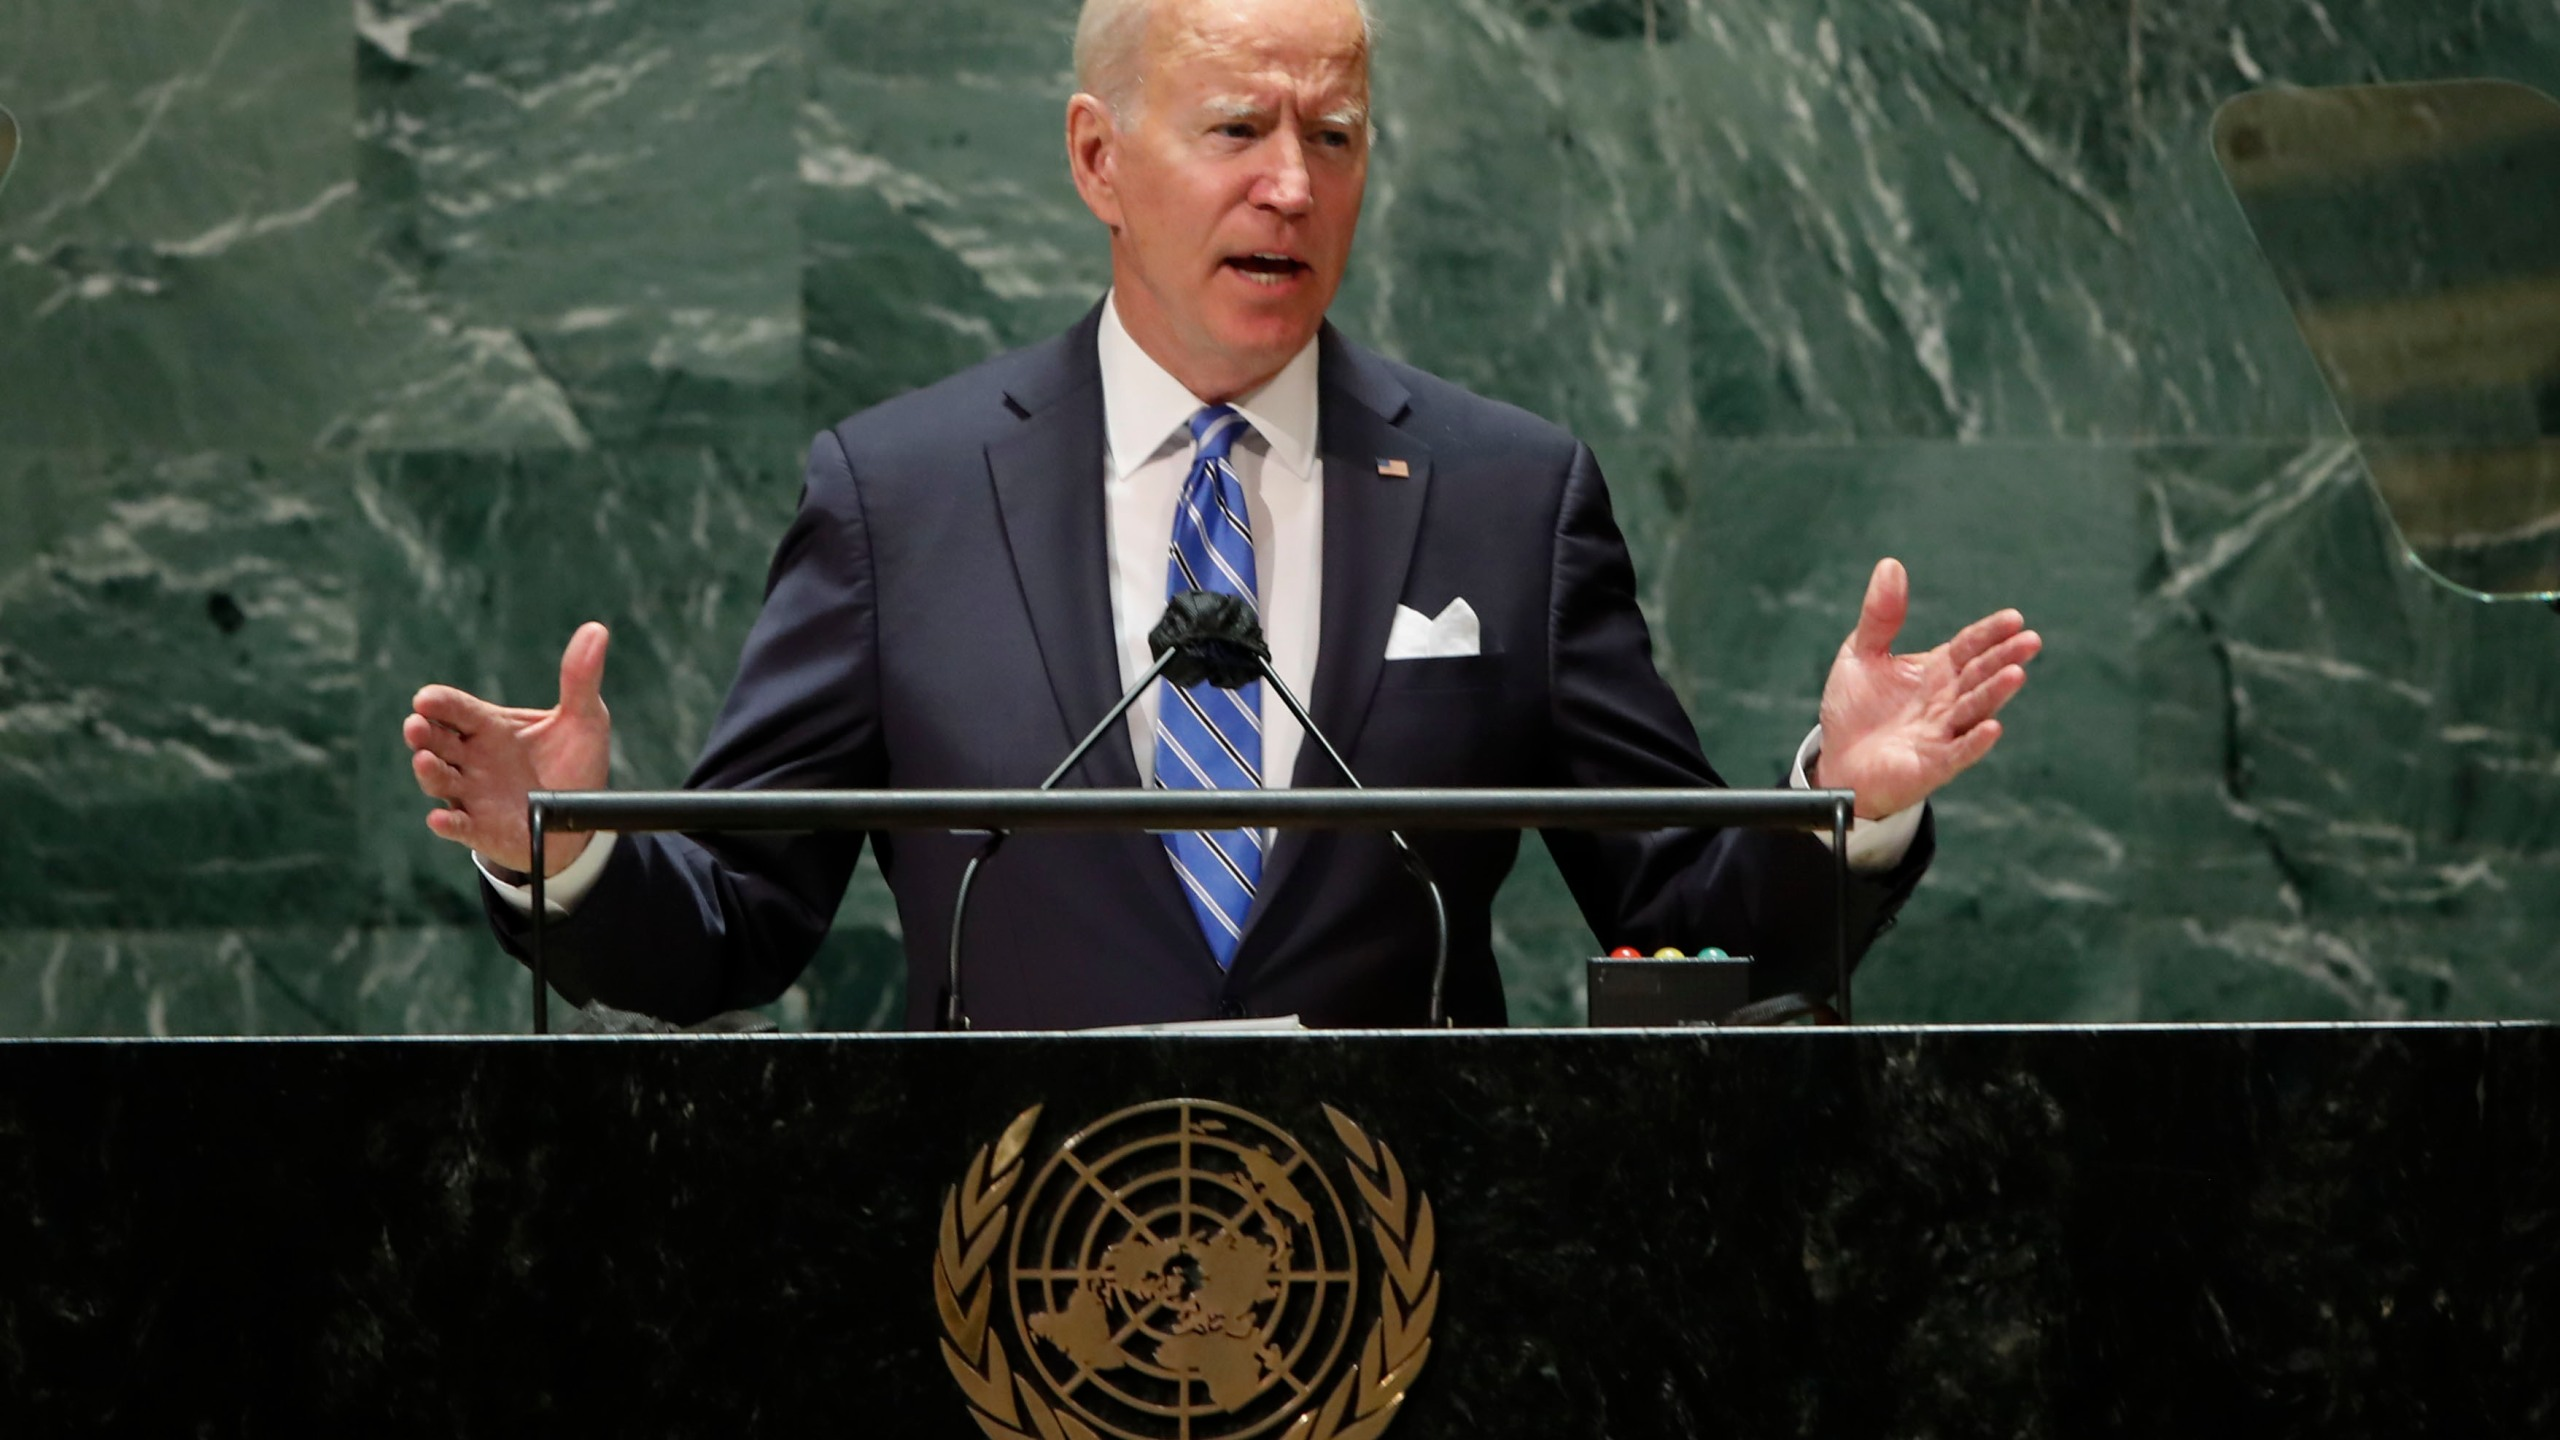 U.S. President Joe Biden speaks during the 76th Session of the United Nations General Assembly at U.N. headquarters in New York on Tuesday, Sept. 21, 2021. (Eduardo Munoz/Pool Photo via AP)